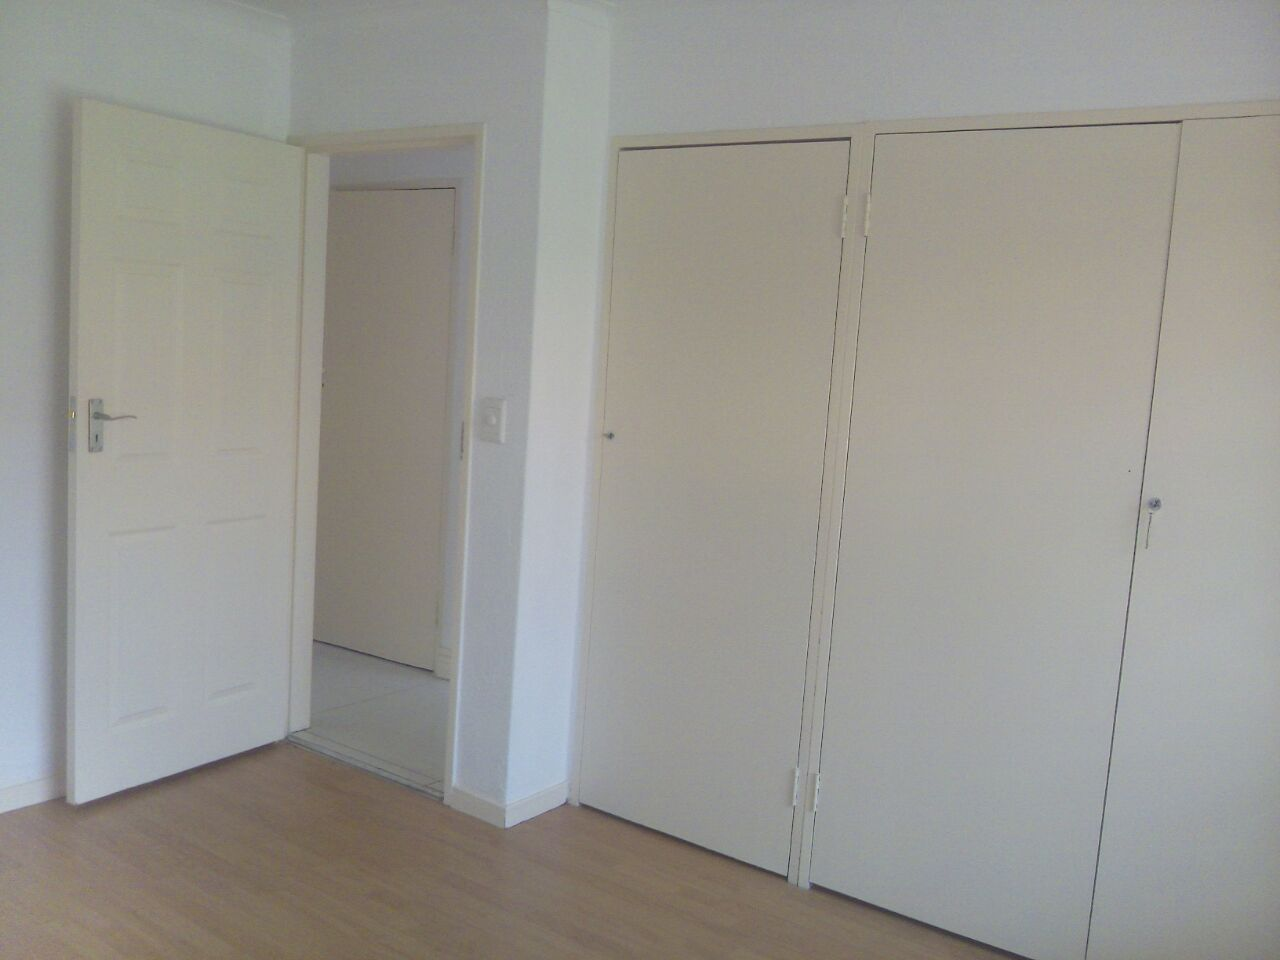 2 Bedroom Townhouse for sale in Sunninghill ENT0074719 : photo#9